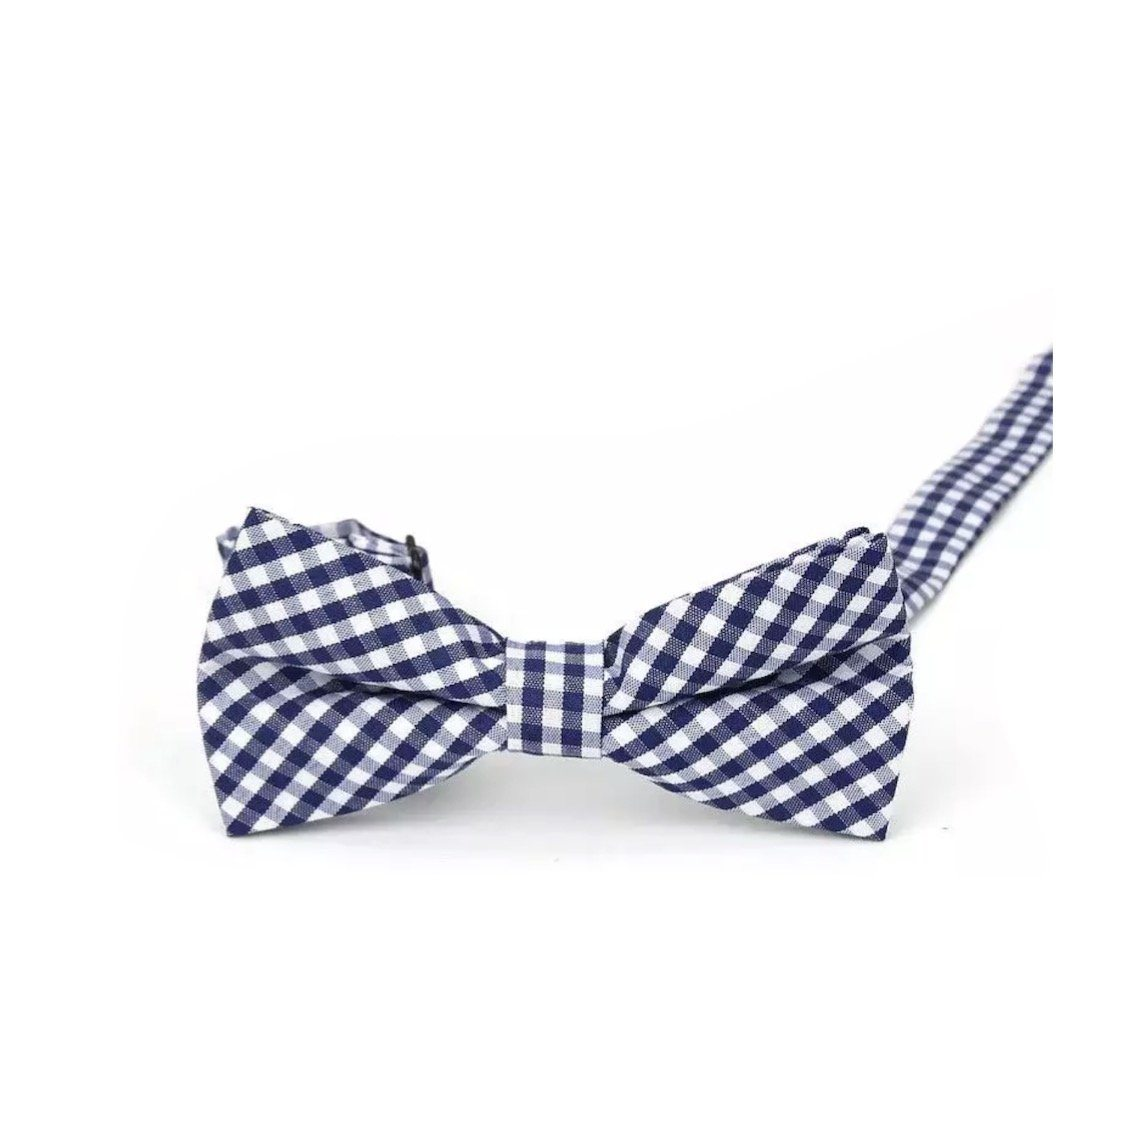 Baby & Kids Blue & White Plaid Bowtie (6 Months - 12 Years) Bowtie Tiny Trendsetter